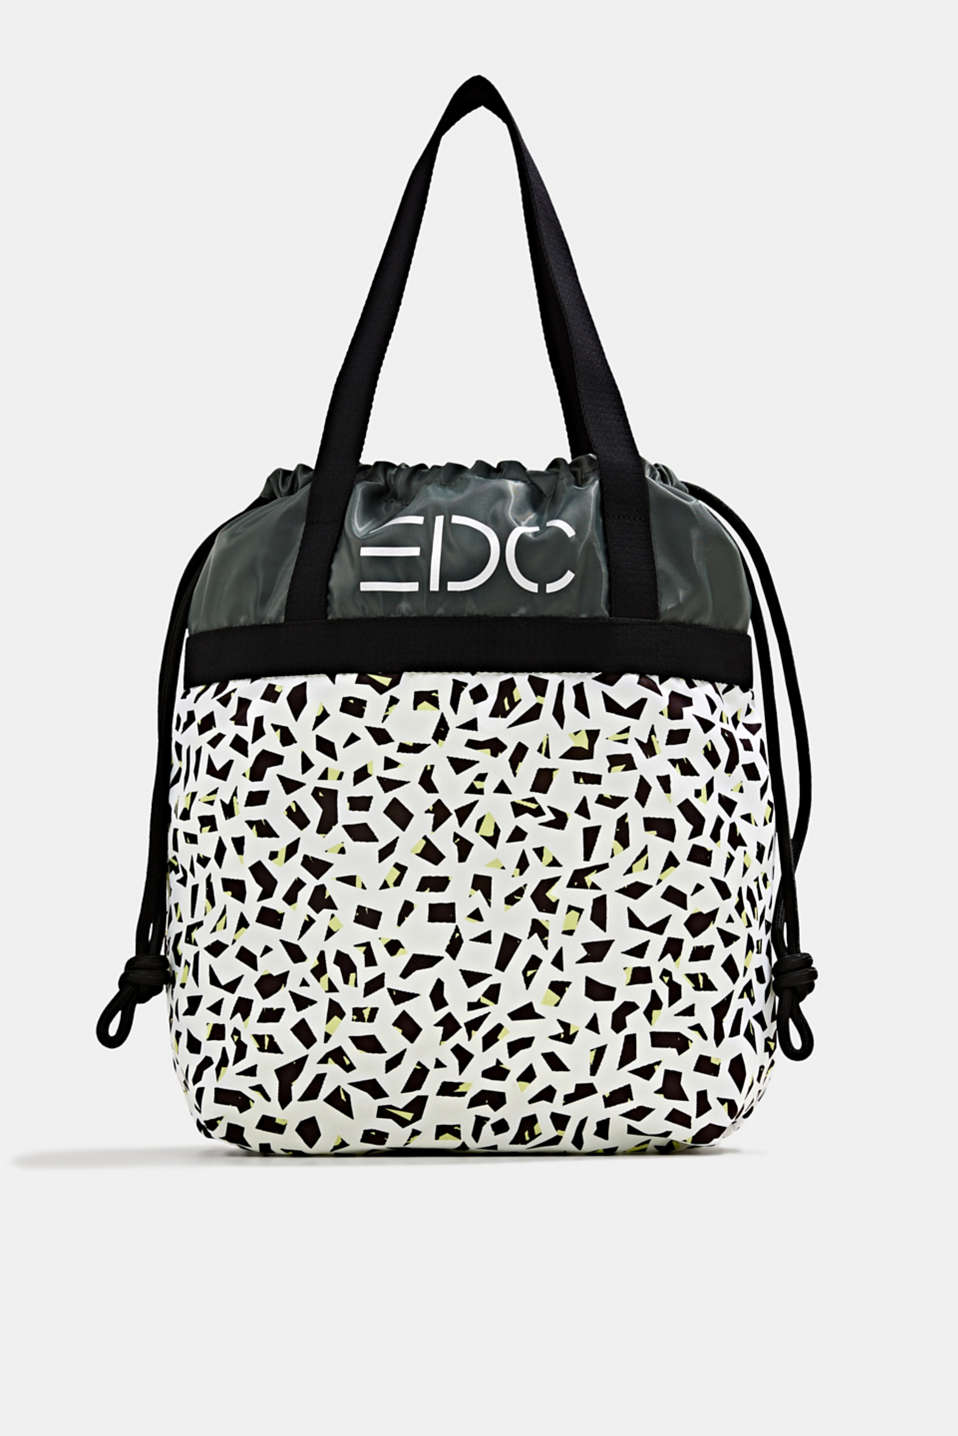 edc - Nylon tote bag with a print